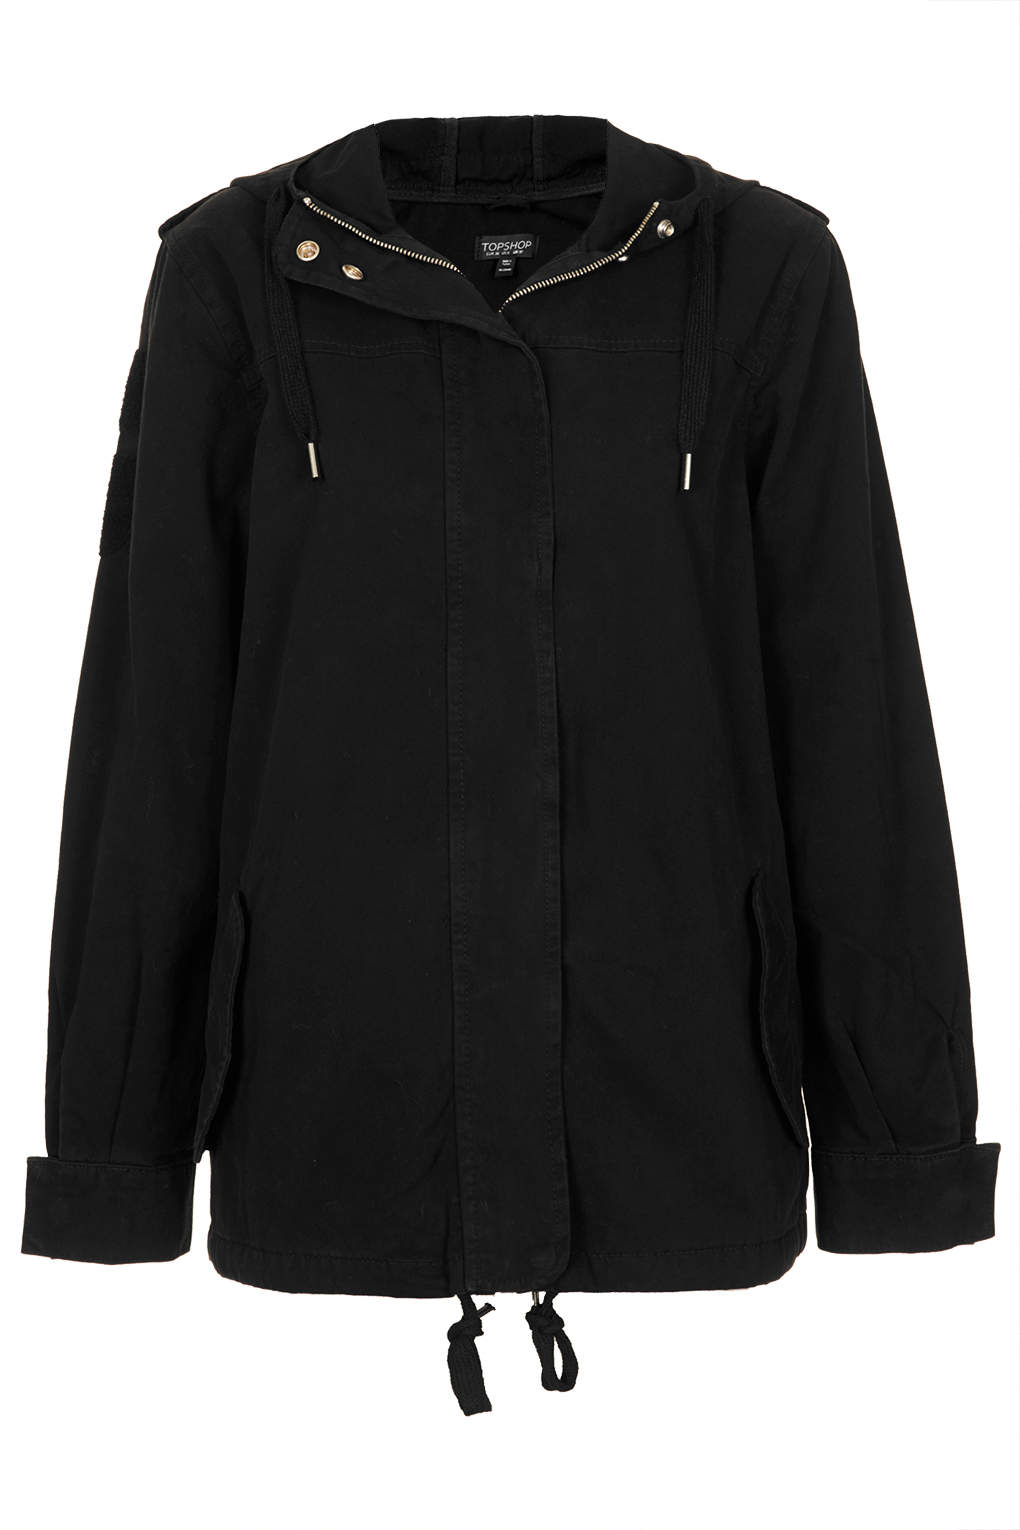 Topshop Lightweight Short Parka Jacket in Black | Lyst